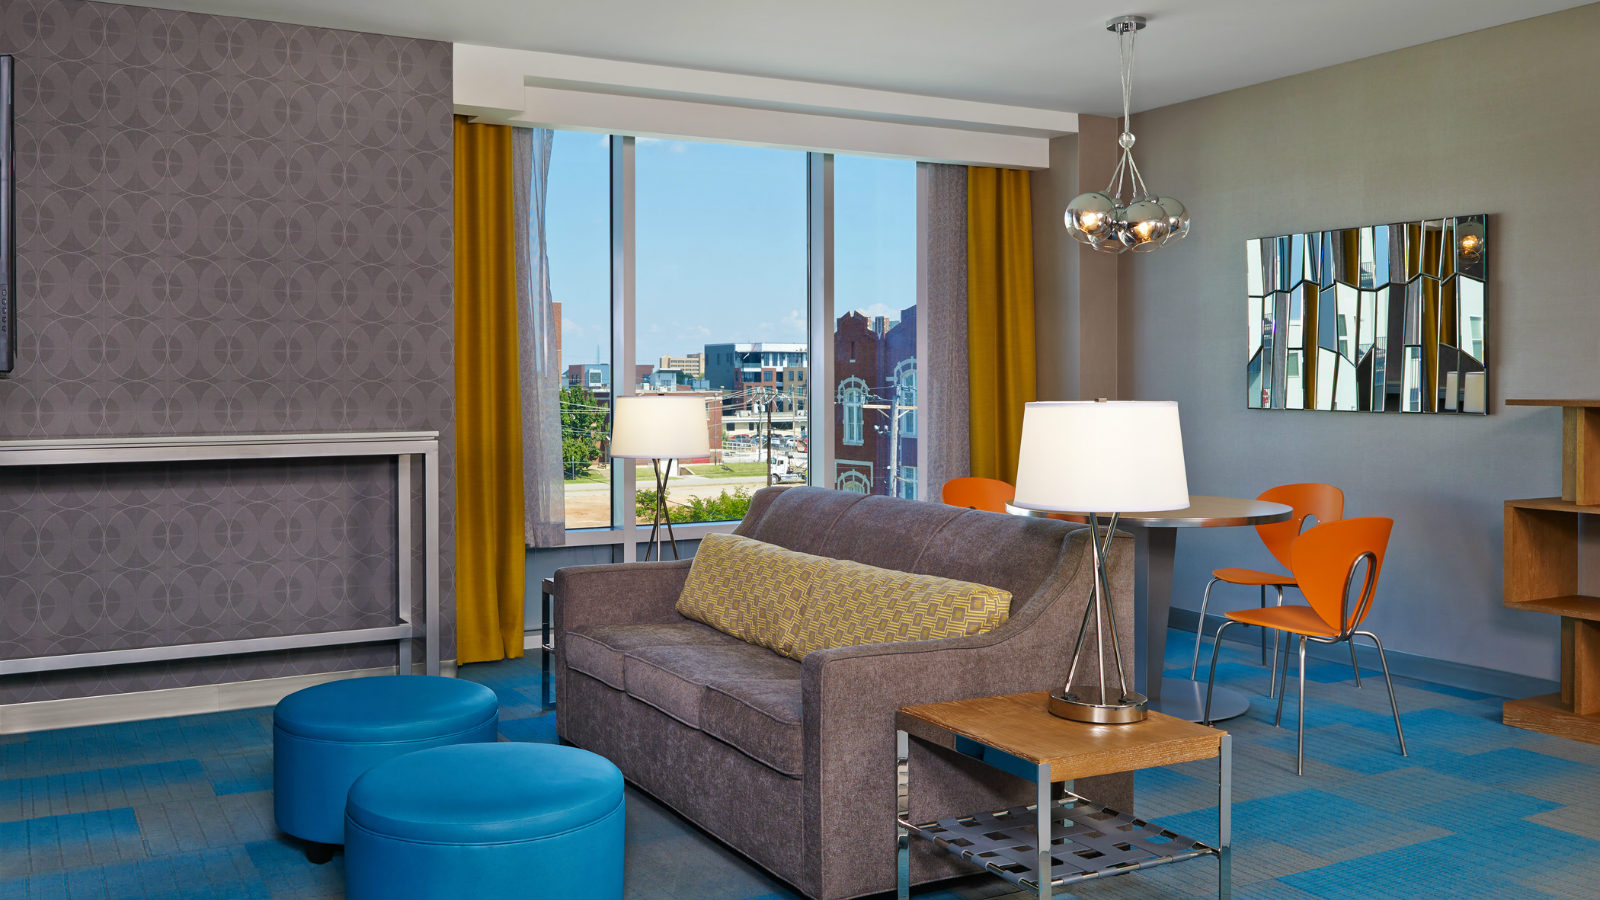 Aloft Savvy SuiteOklahoma City Accommodations   Aloft Oklahoma City Downtown  . Okc Downtown Living. Home Design Ideas